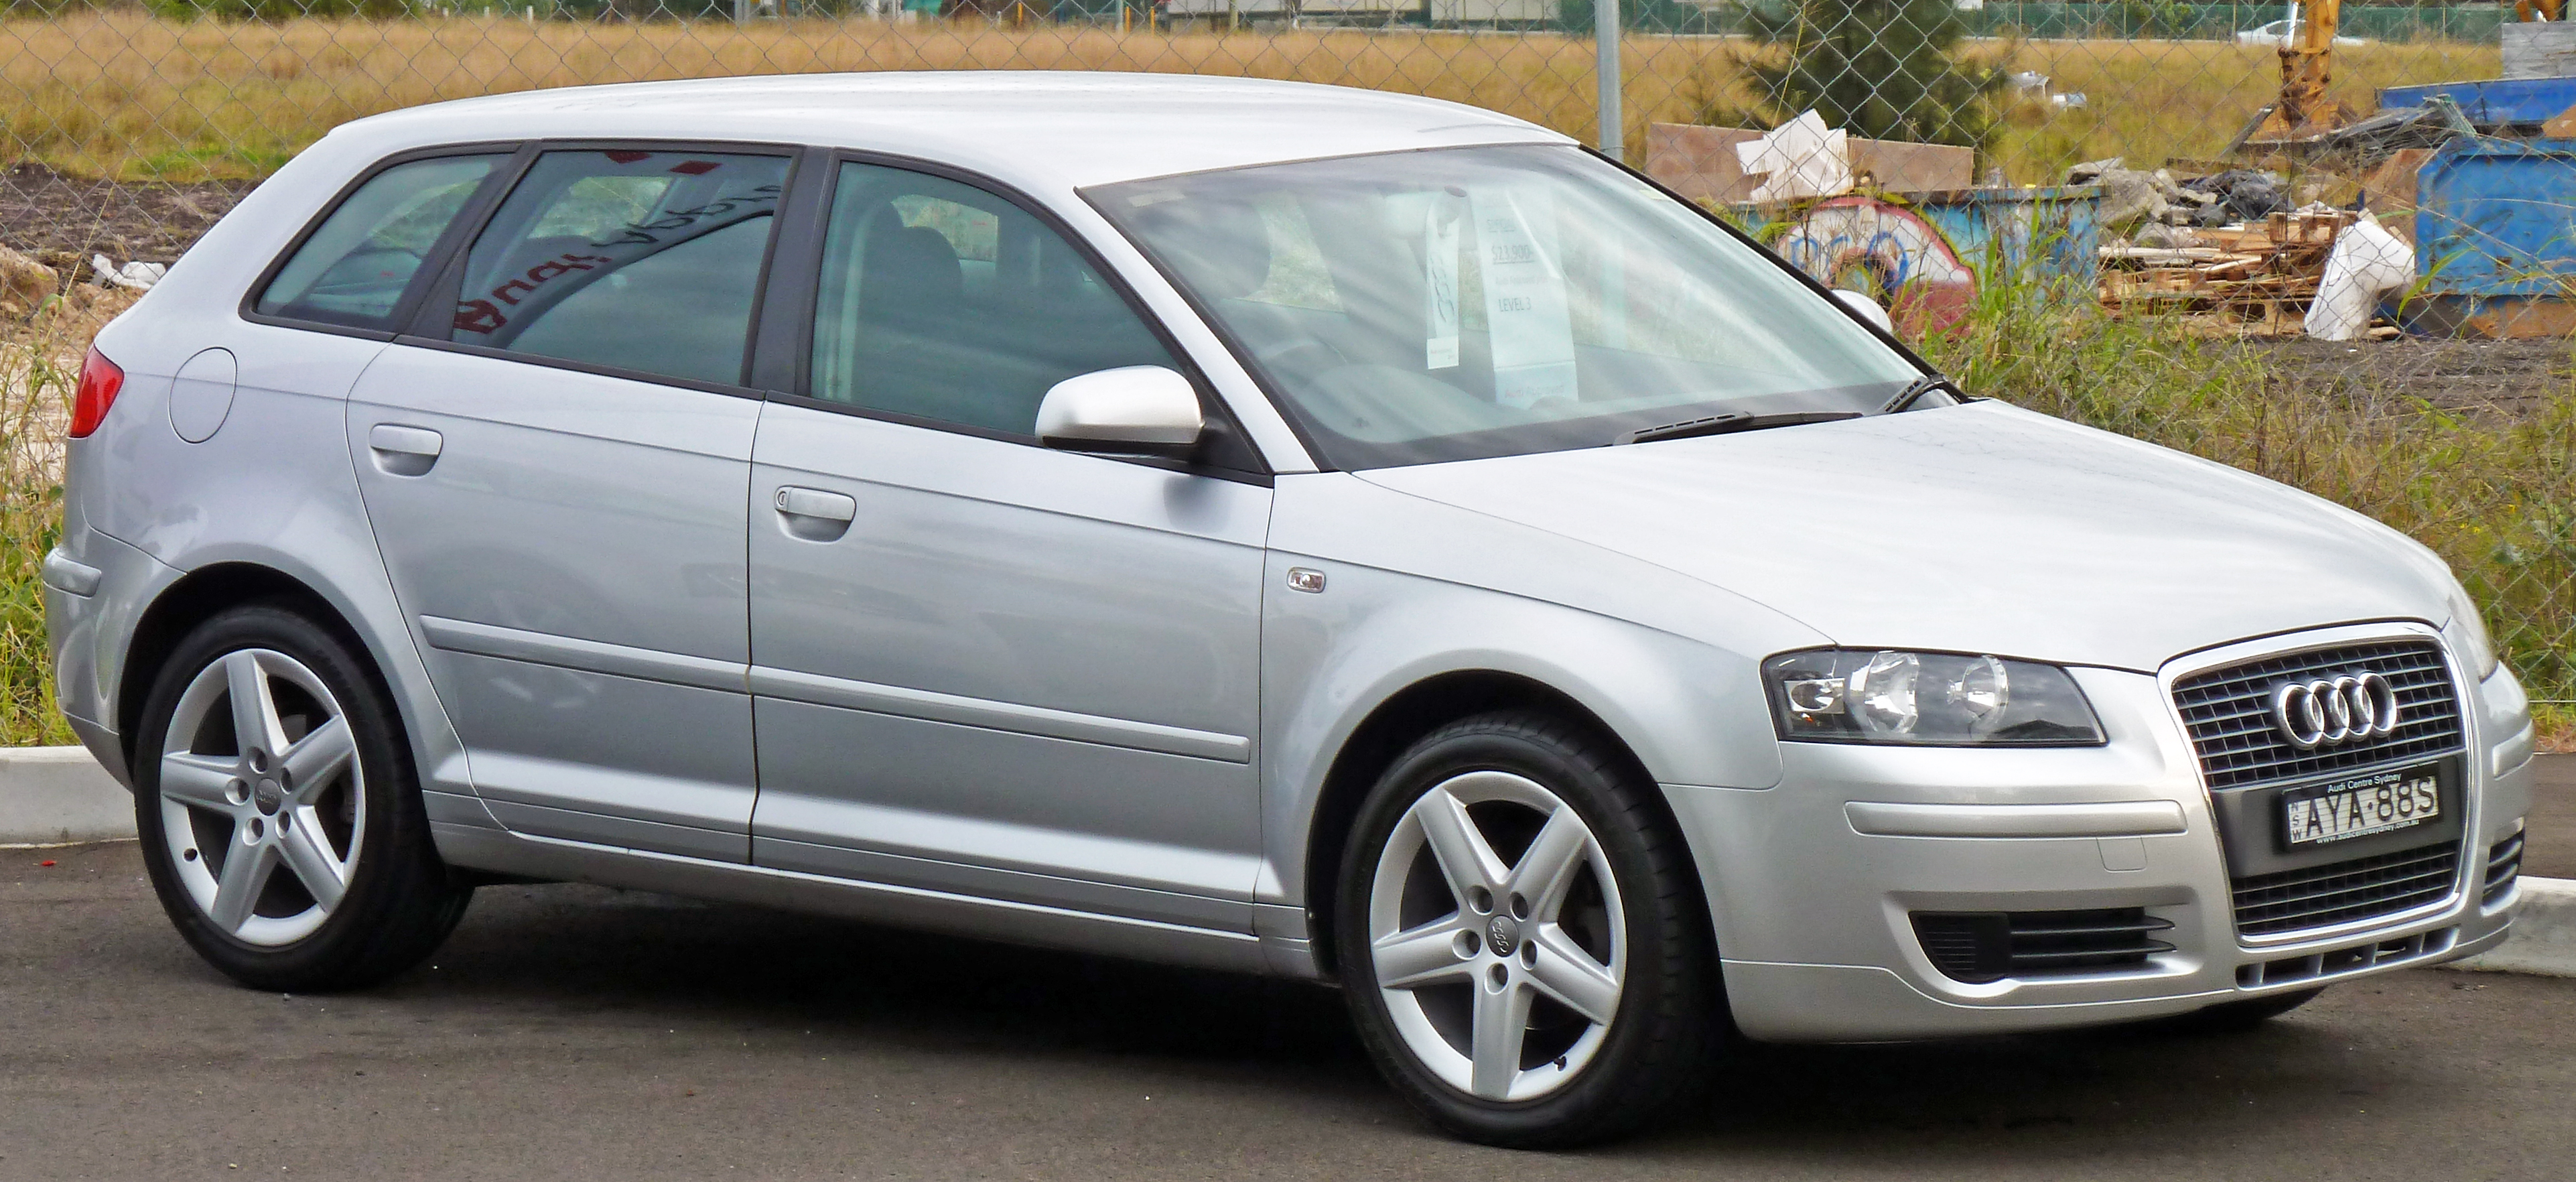 file 2005 audi a3 8pa 1 6 attraction 5 door sportback wikimedia commons. Black Bedroom Furniture Sets. Home Design Ideas